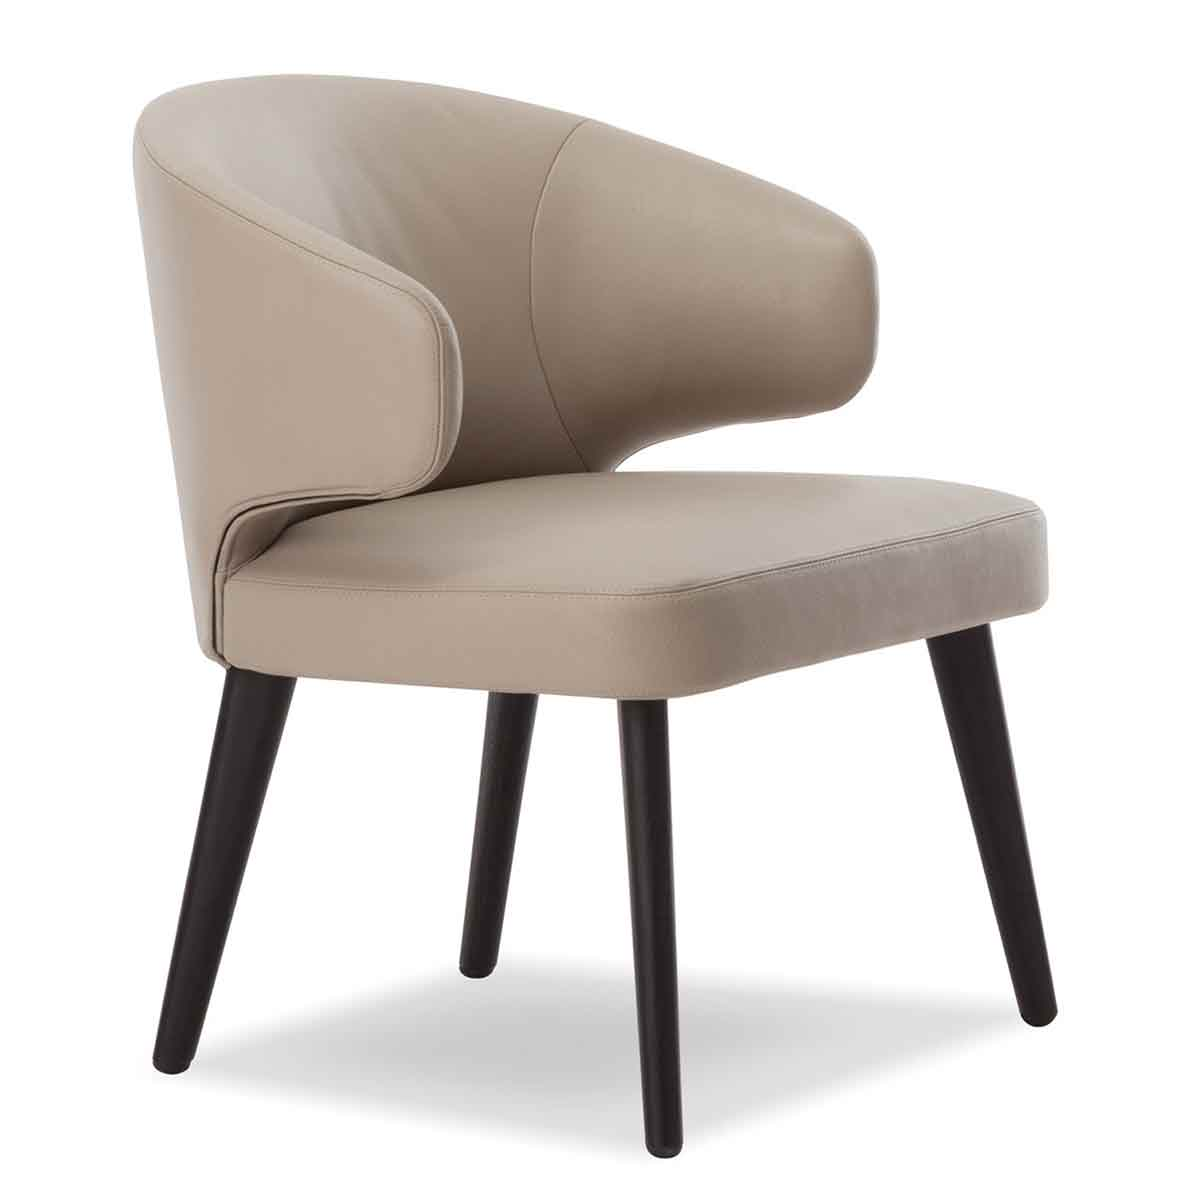 Northern Europe Light Luxury Dining Chair Family Restaurant Leisure Chair Modern Simple Single Iron Back Chair Ins Dressing